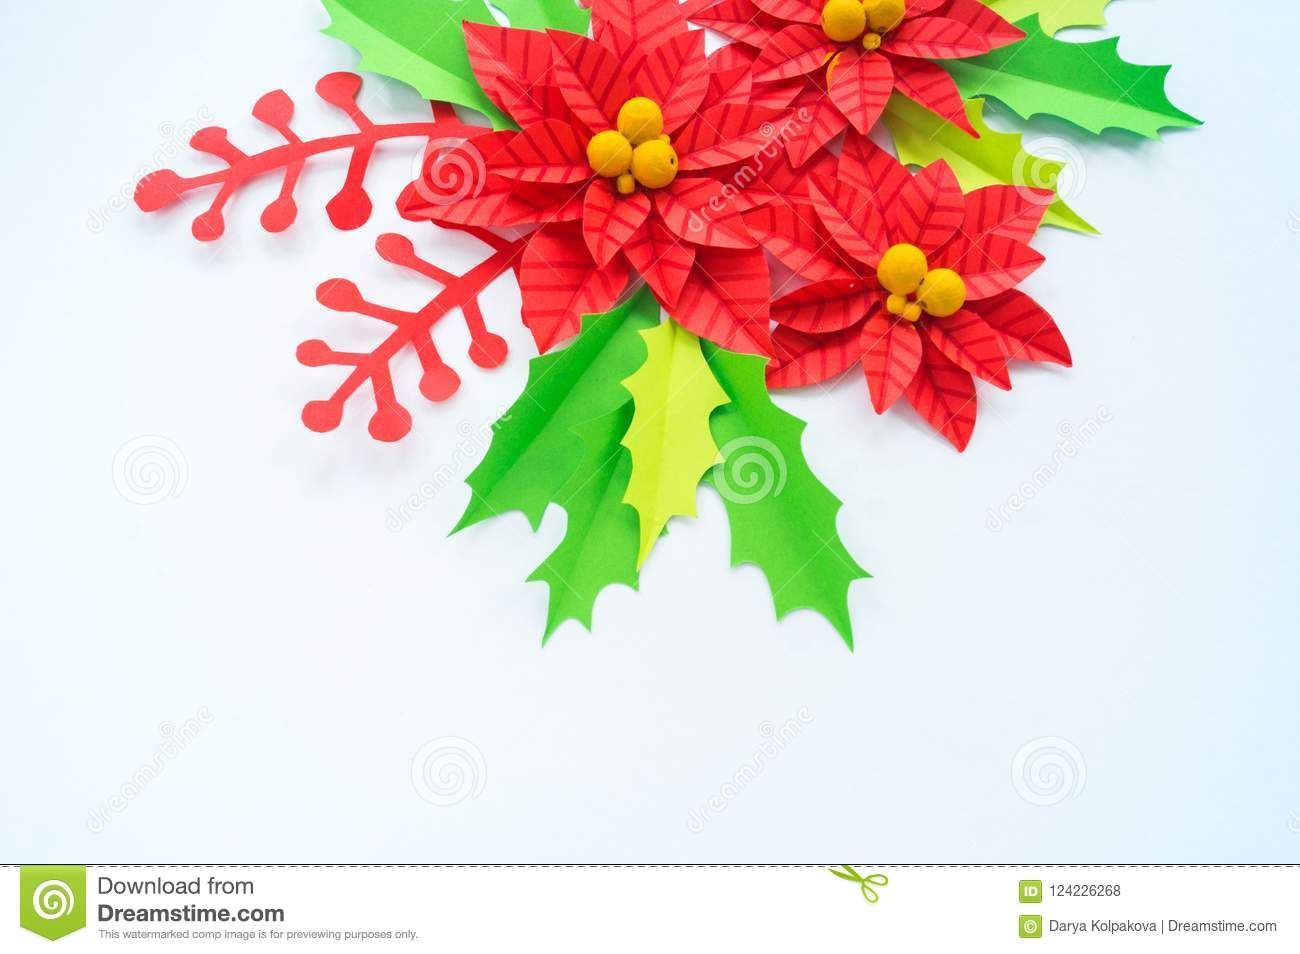 Paper flower poinsettia and leaves of holly stock photo image of download paper flower poinsettia and leaves of holly stock photo image of holiday handmade mightylinksfo